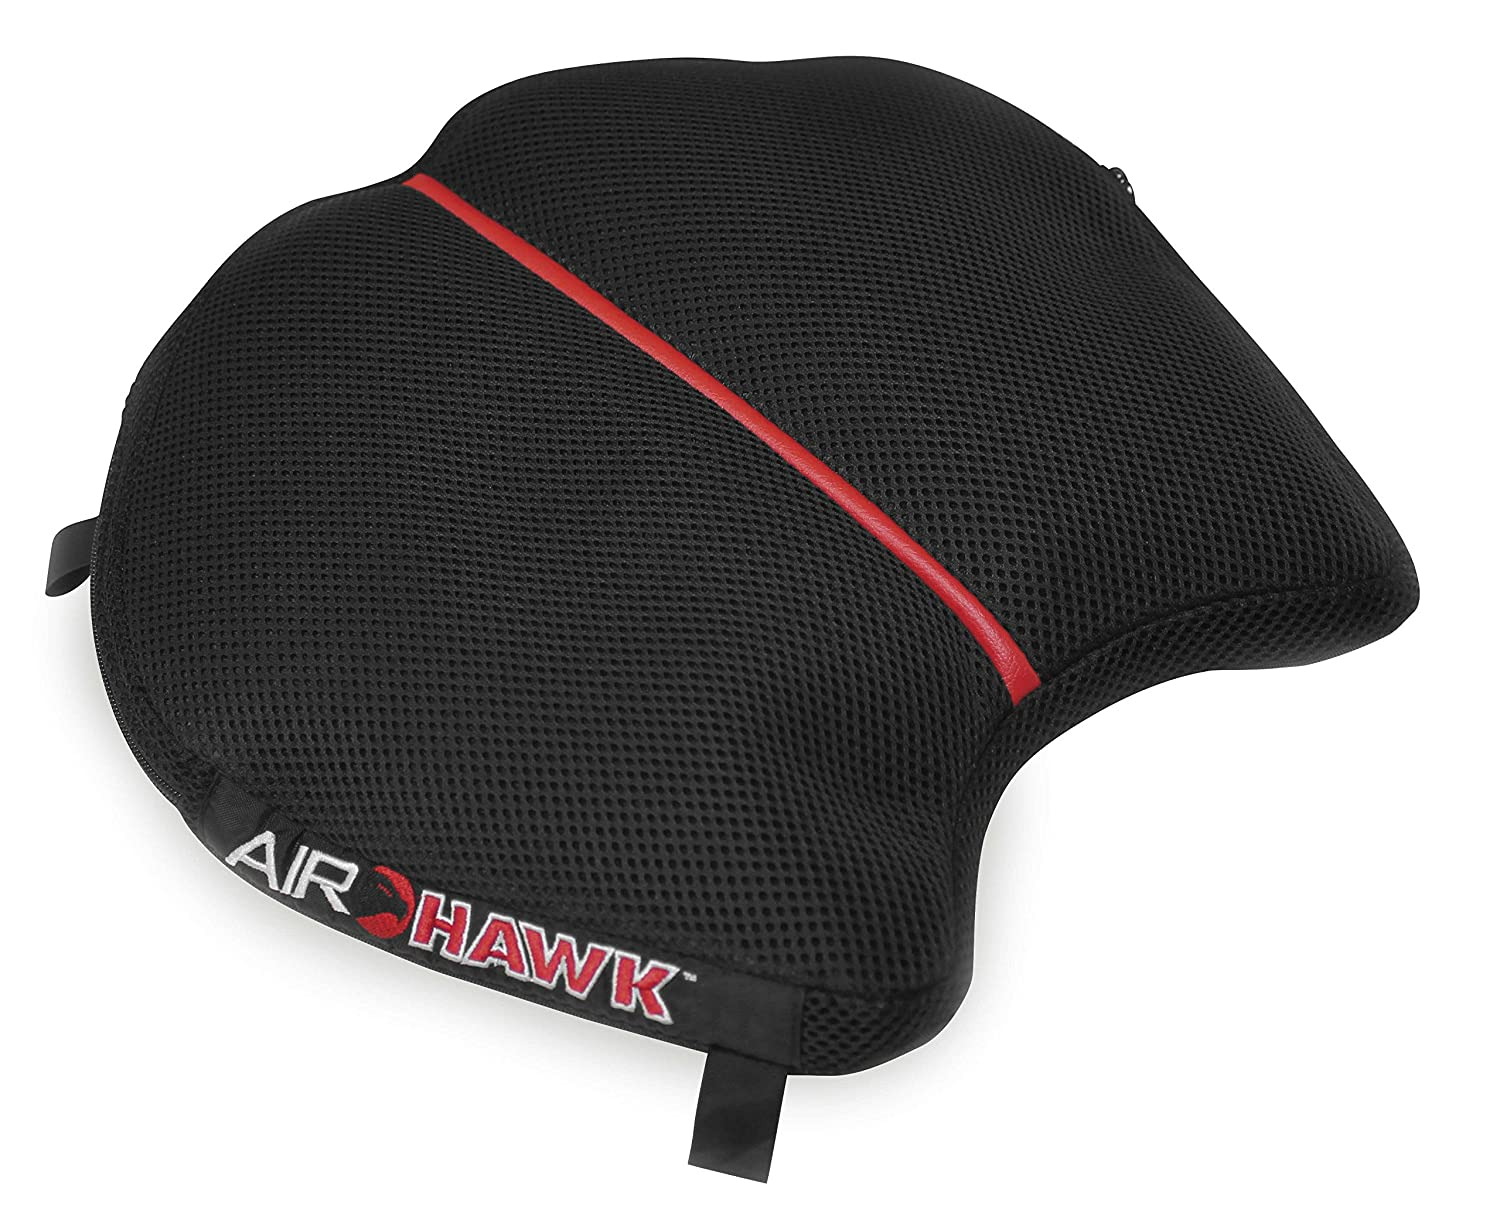 Airhawk - R-REVB Cruiser R Large Motorcycle Seat Cushion for Comfortable Travel - Large Size Webyshops FA-CRUISER-R-REVB